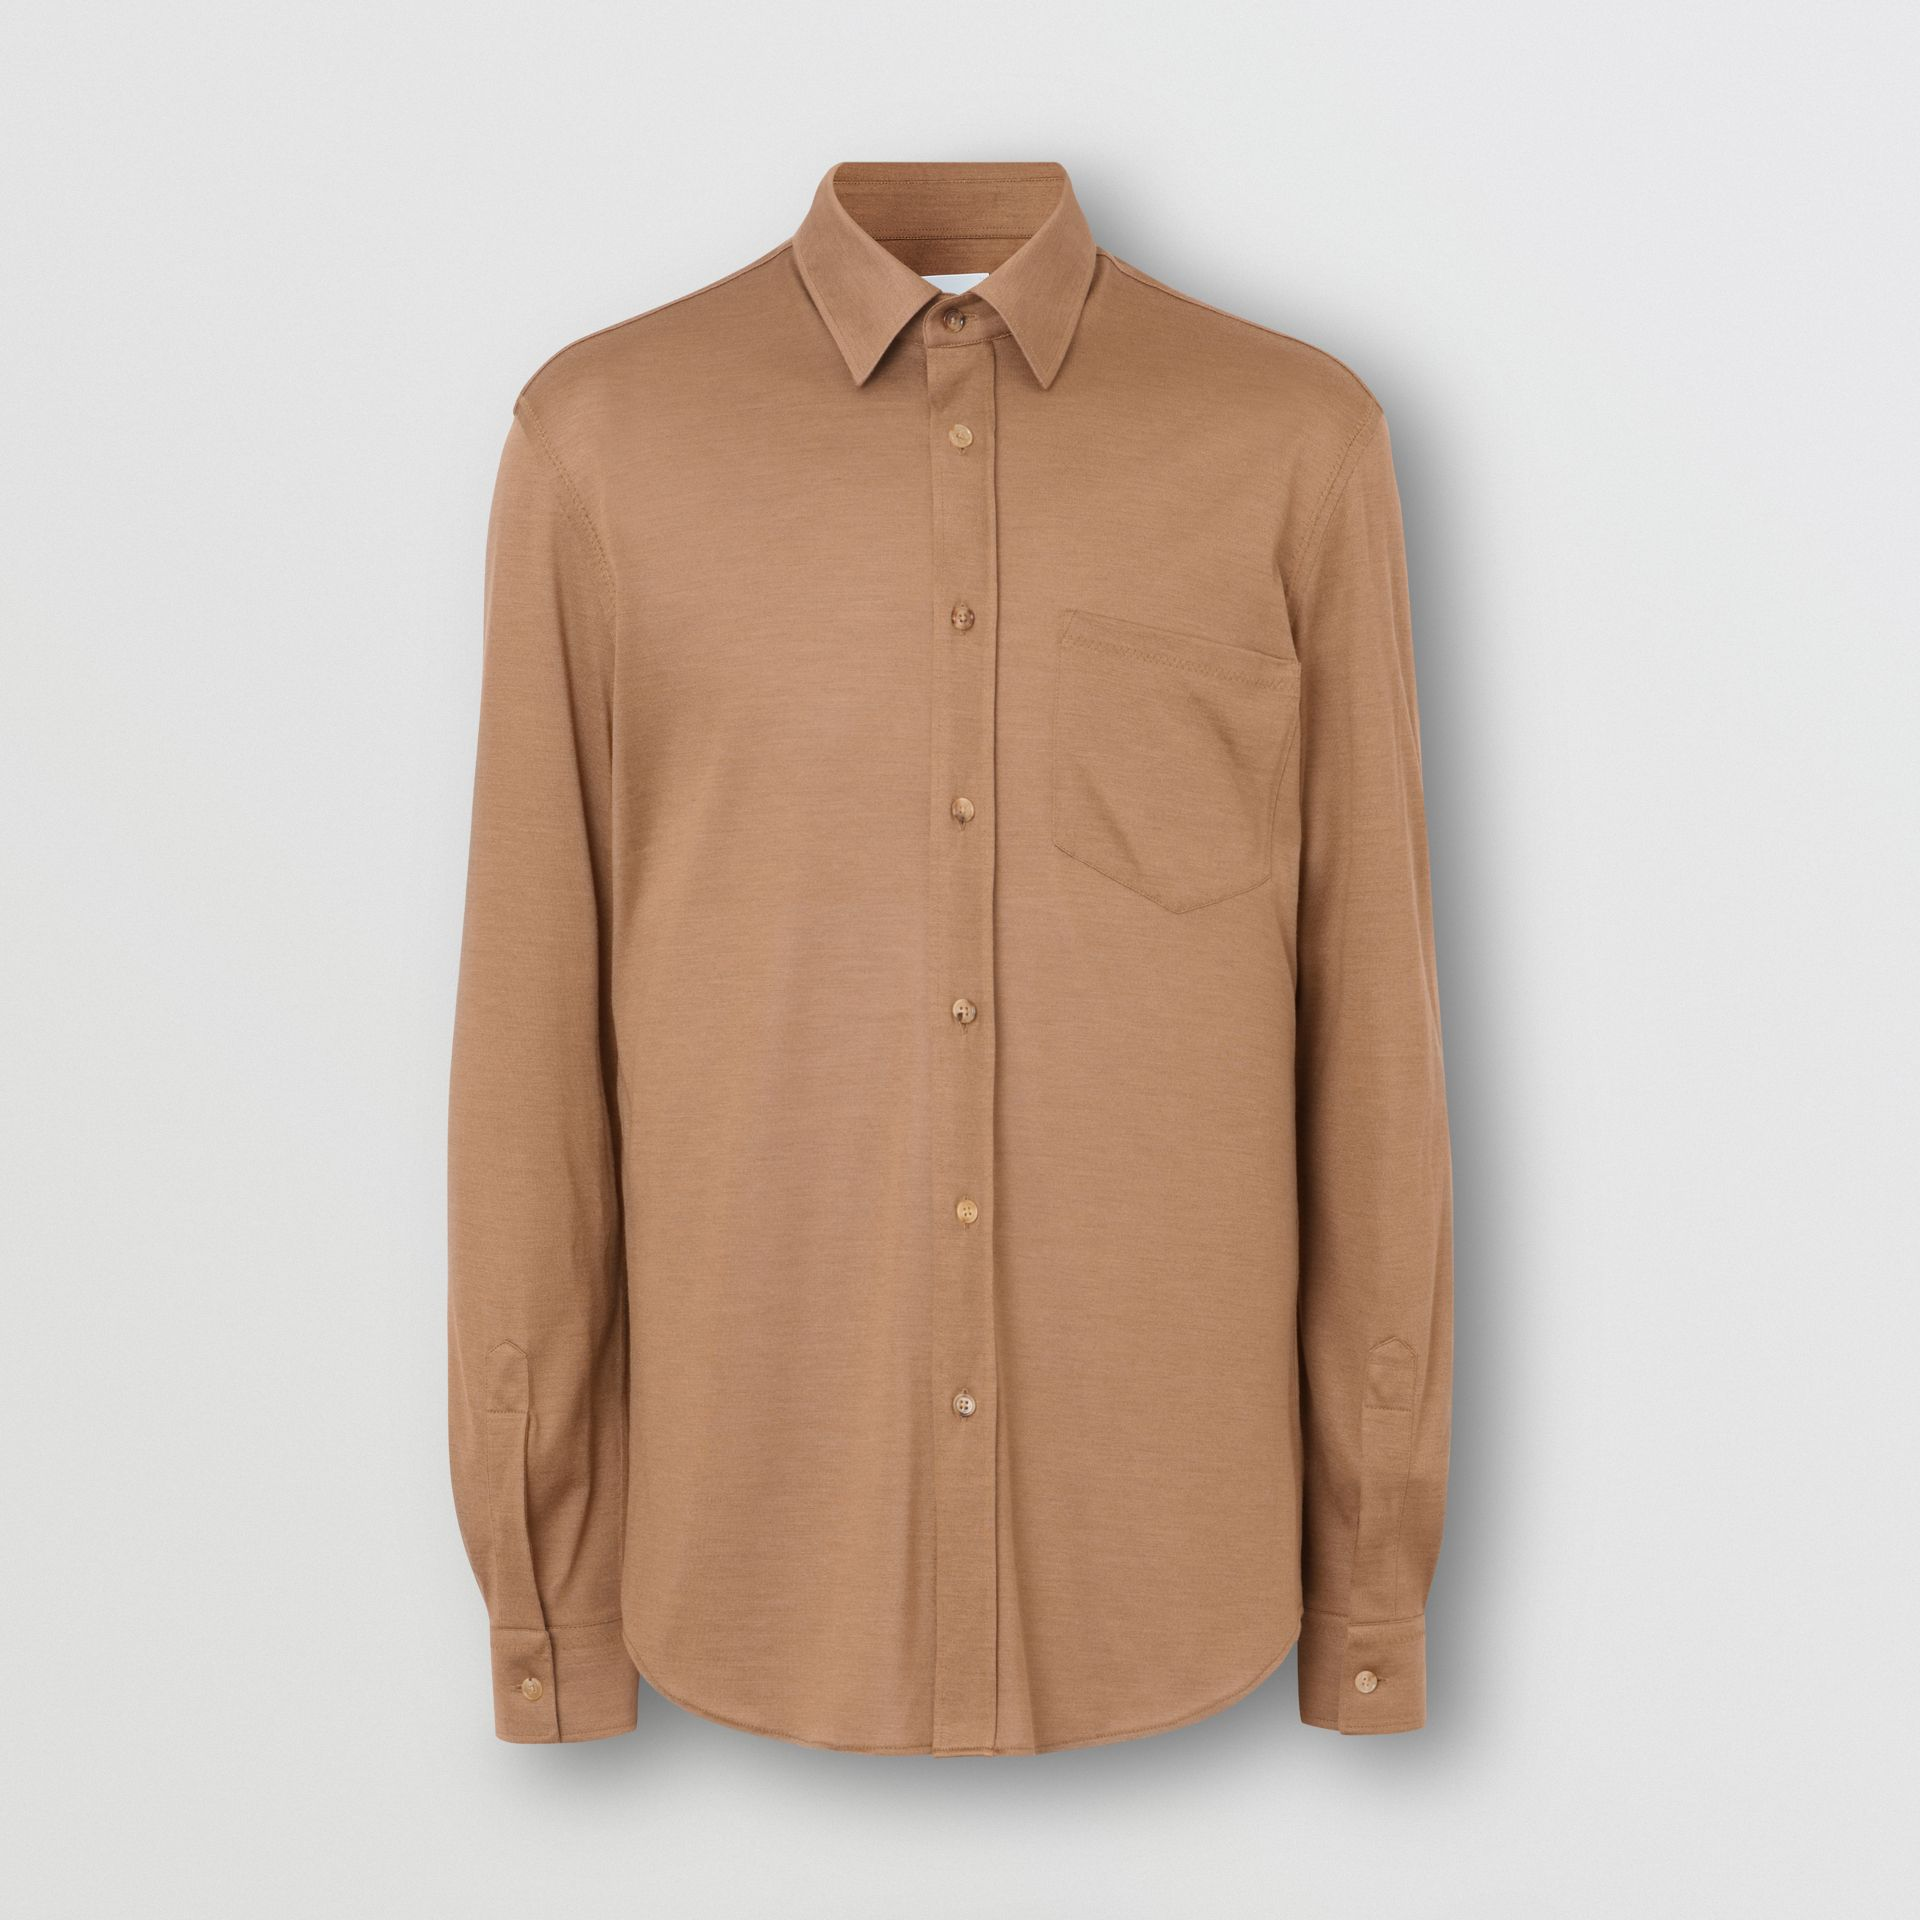 Classic Fit Silk Jersey Shirt in Warm Camel - Men | Burberry Singapore - gallery image 3